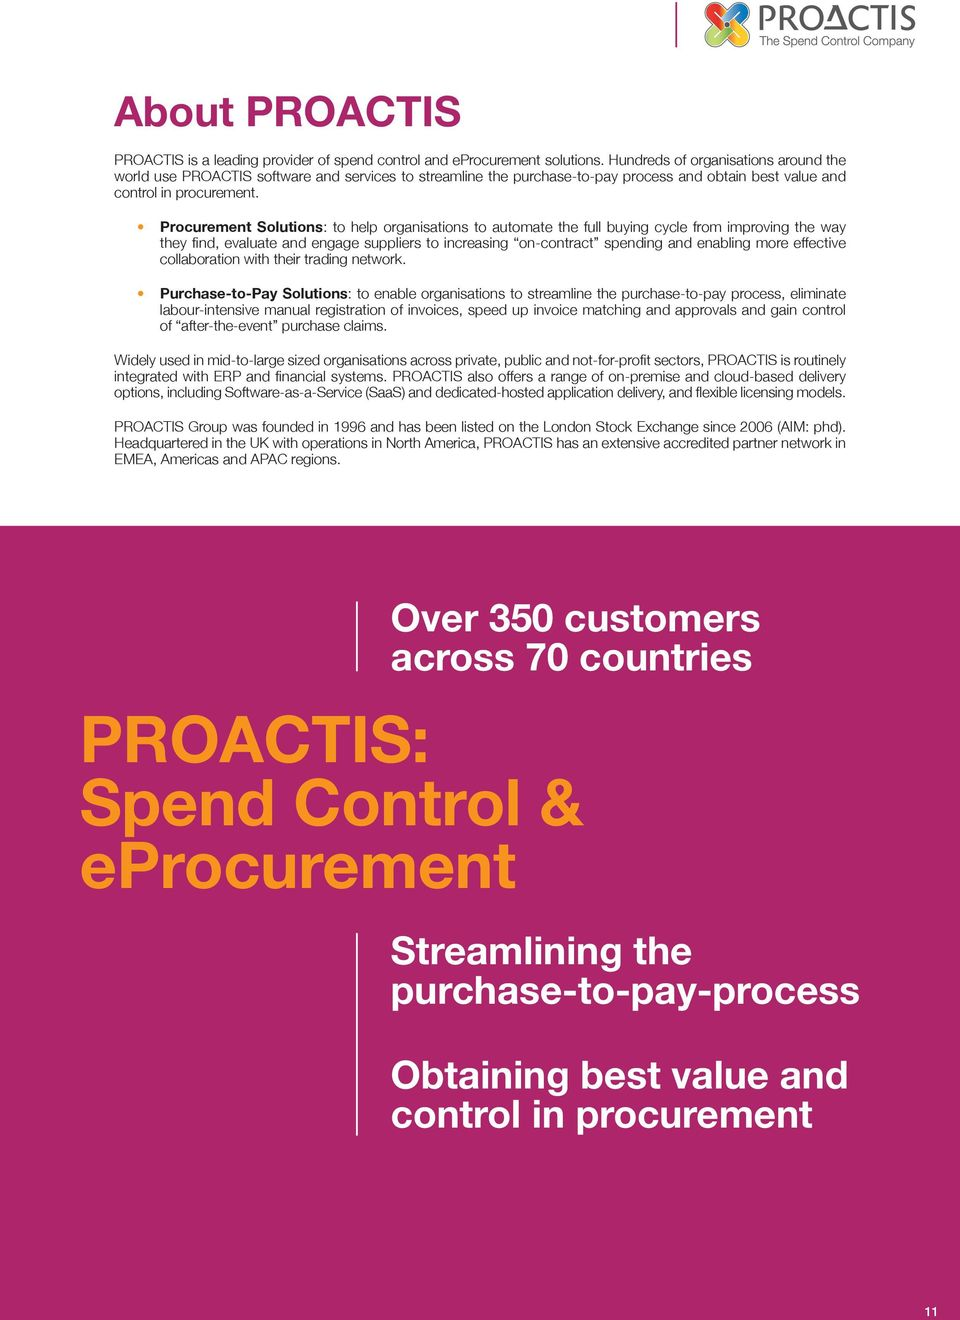 Procurement Solutions: to help organisations to automate the full buying cycle from improving the way they find, evaluate and engage suppliers to increasing on-contract spending and enabling more